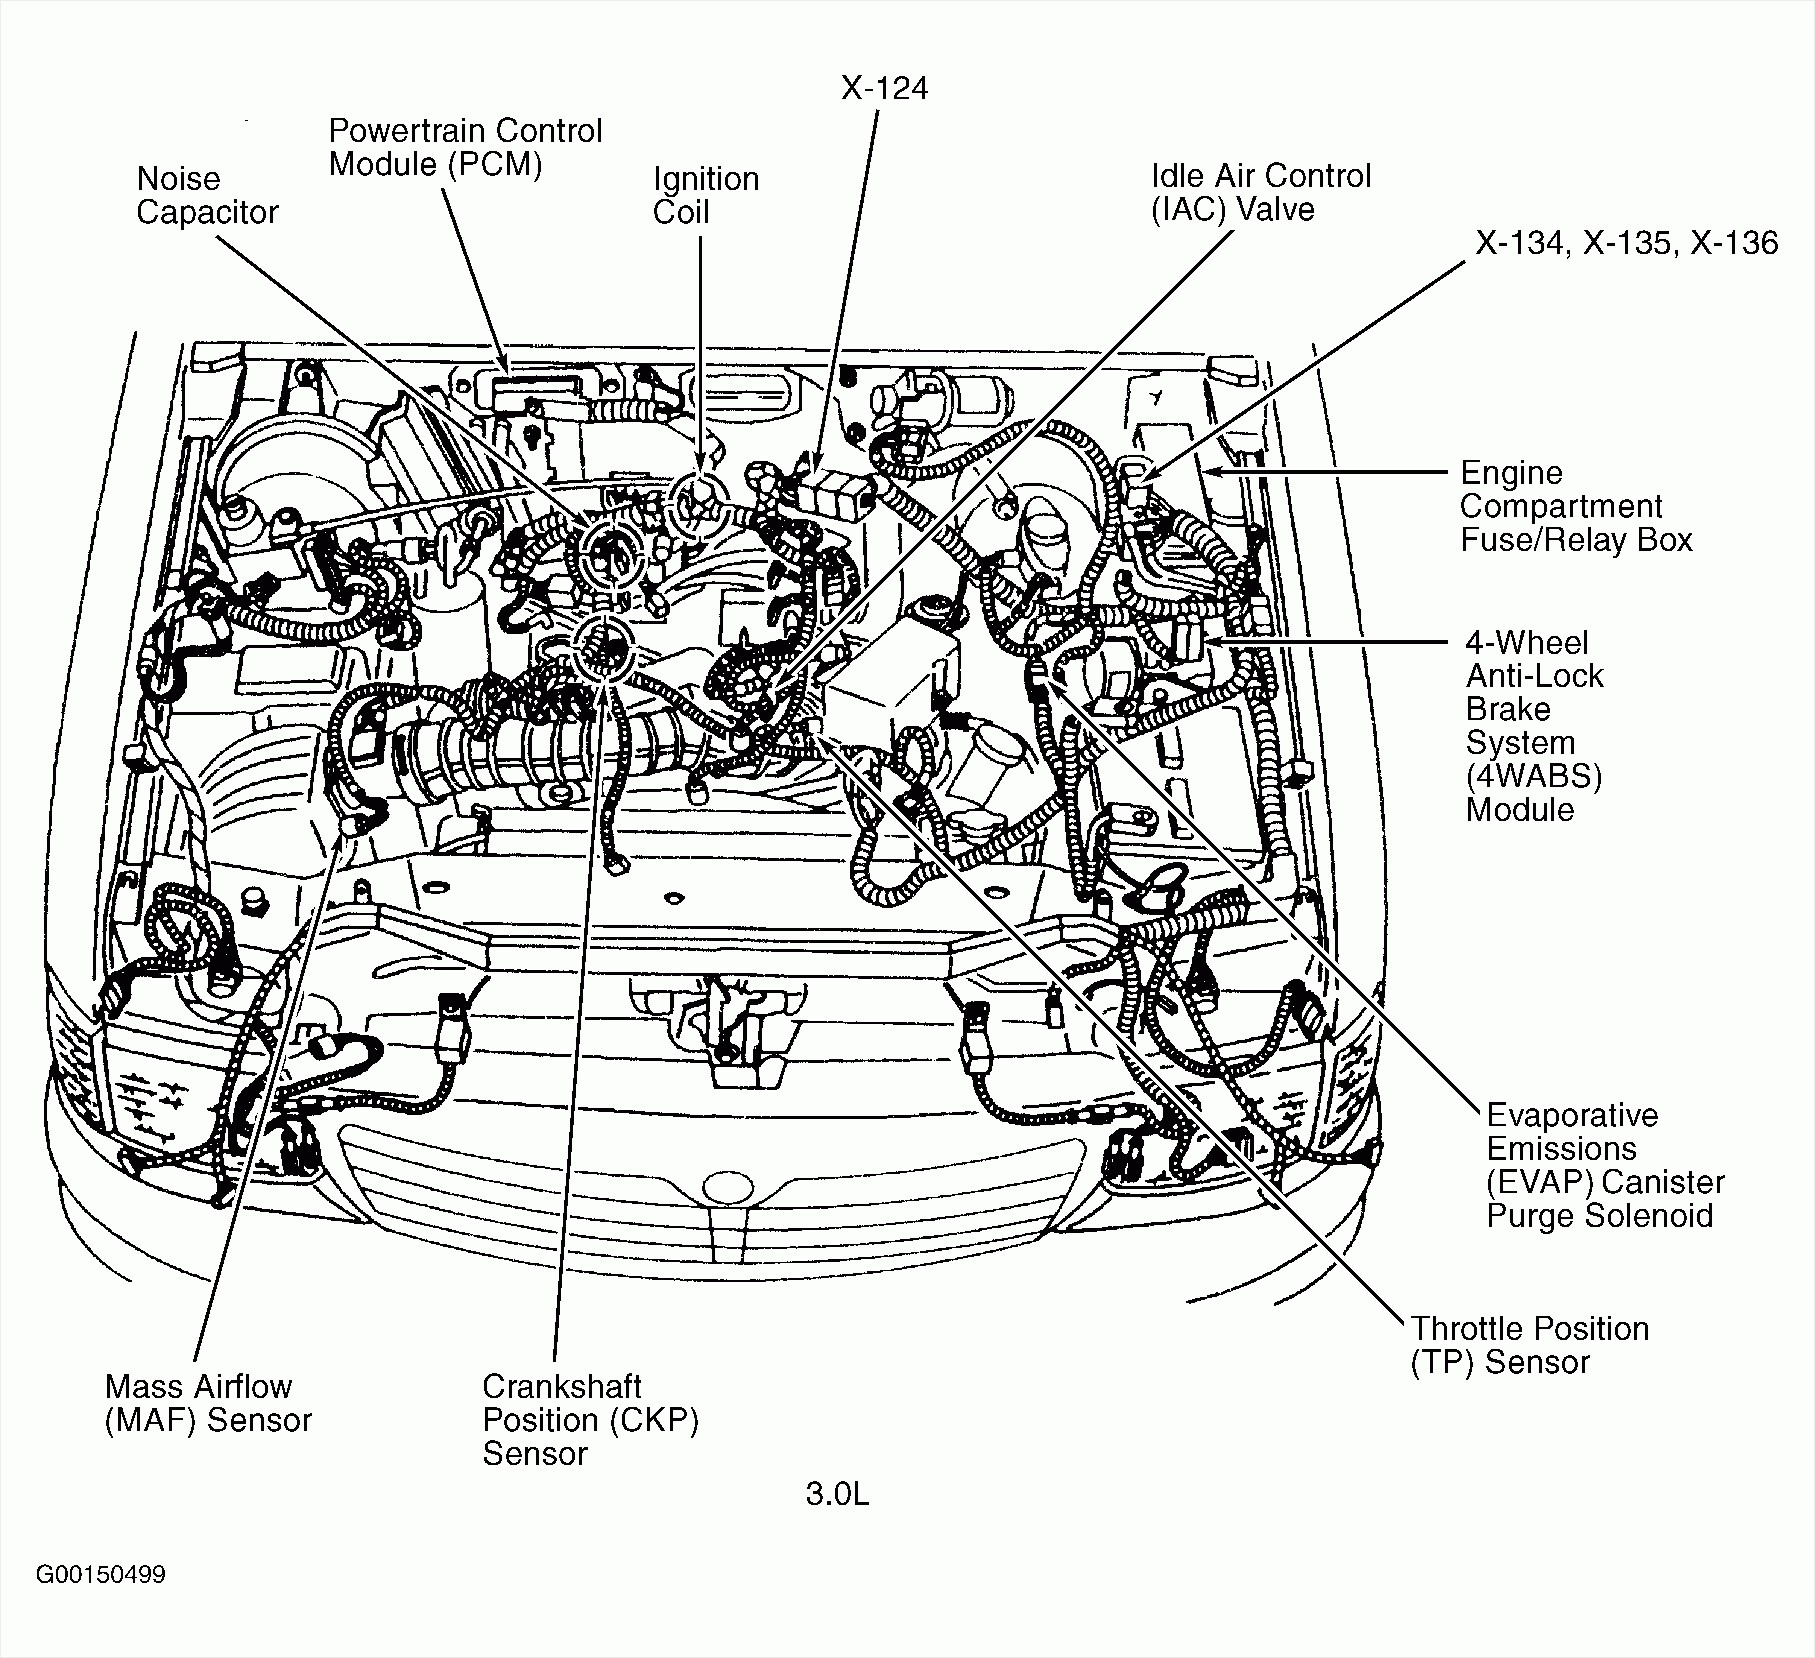 gm 3800 engine diagram trusted wiring diagrams u2022 rh shlnk co 3800  Engine Diagram Oil Sensor